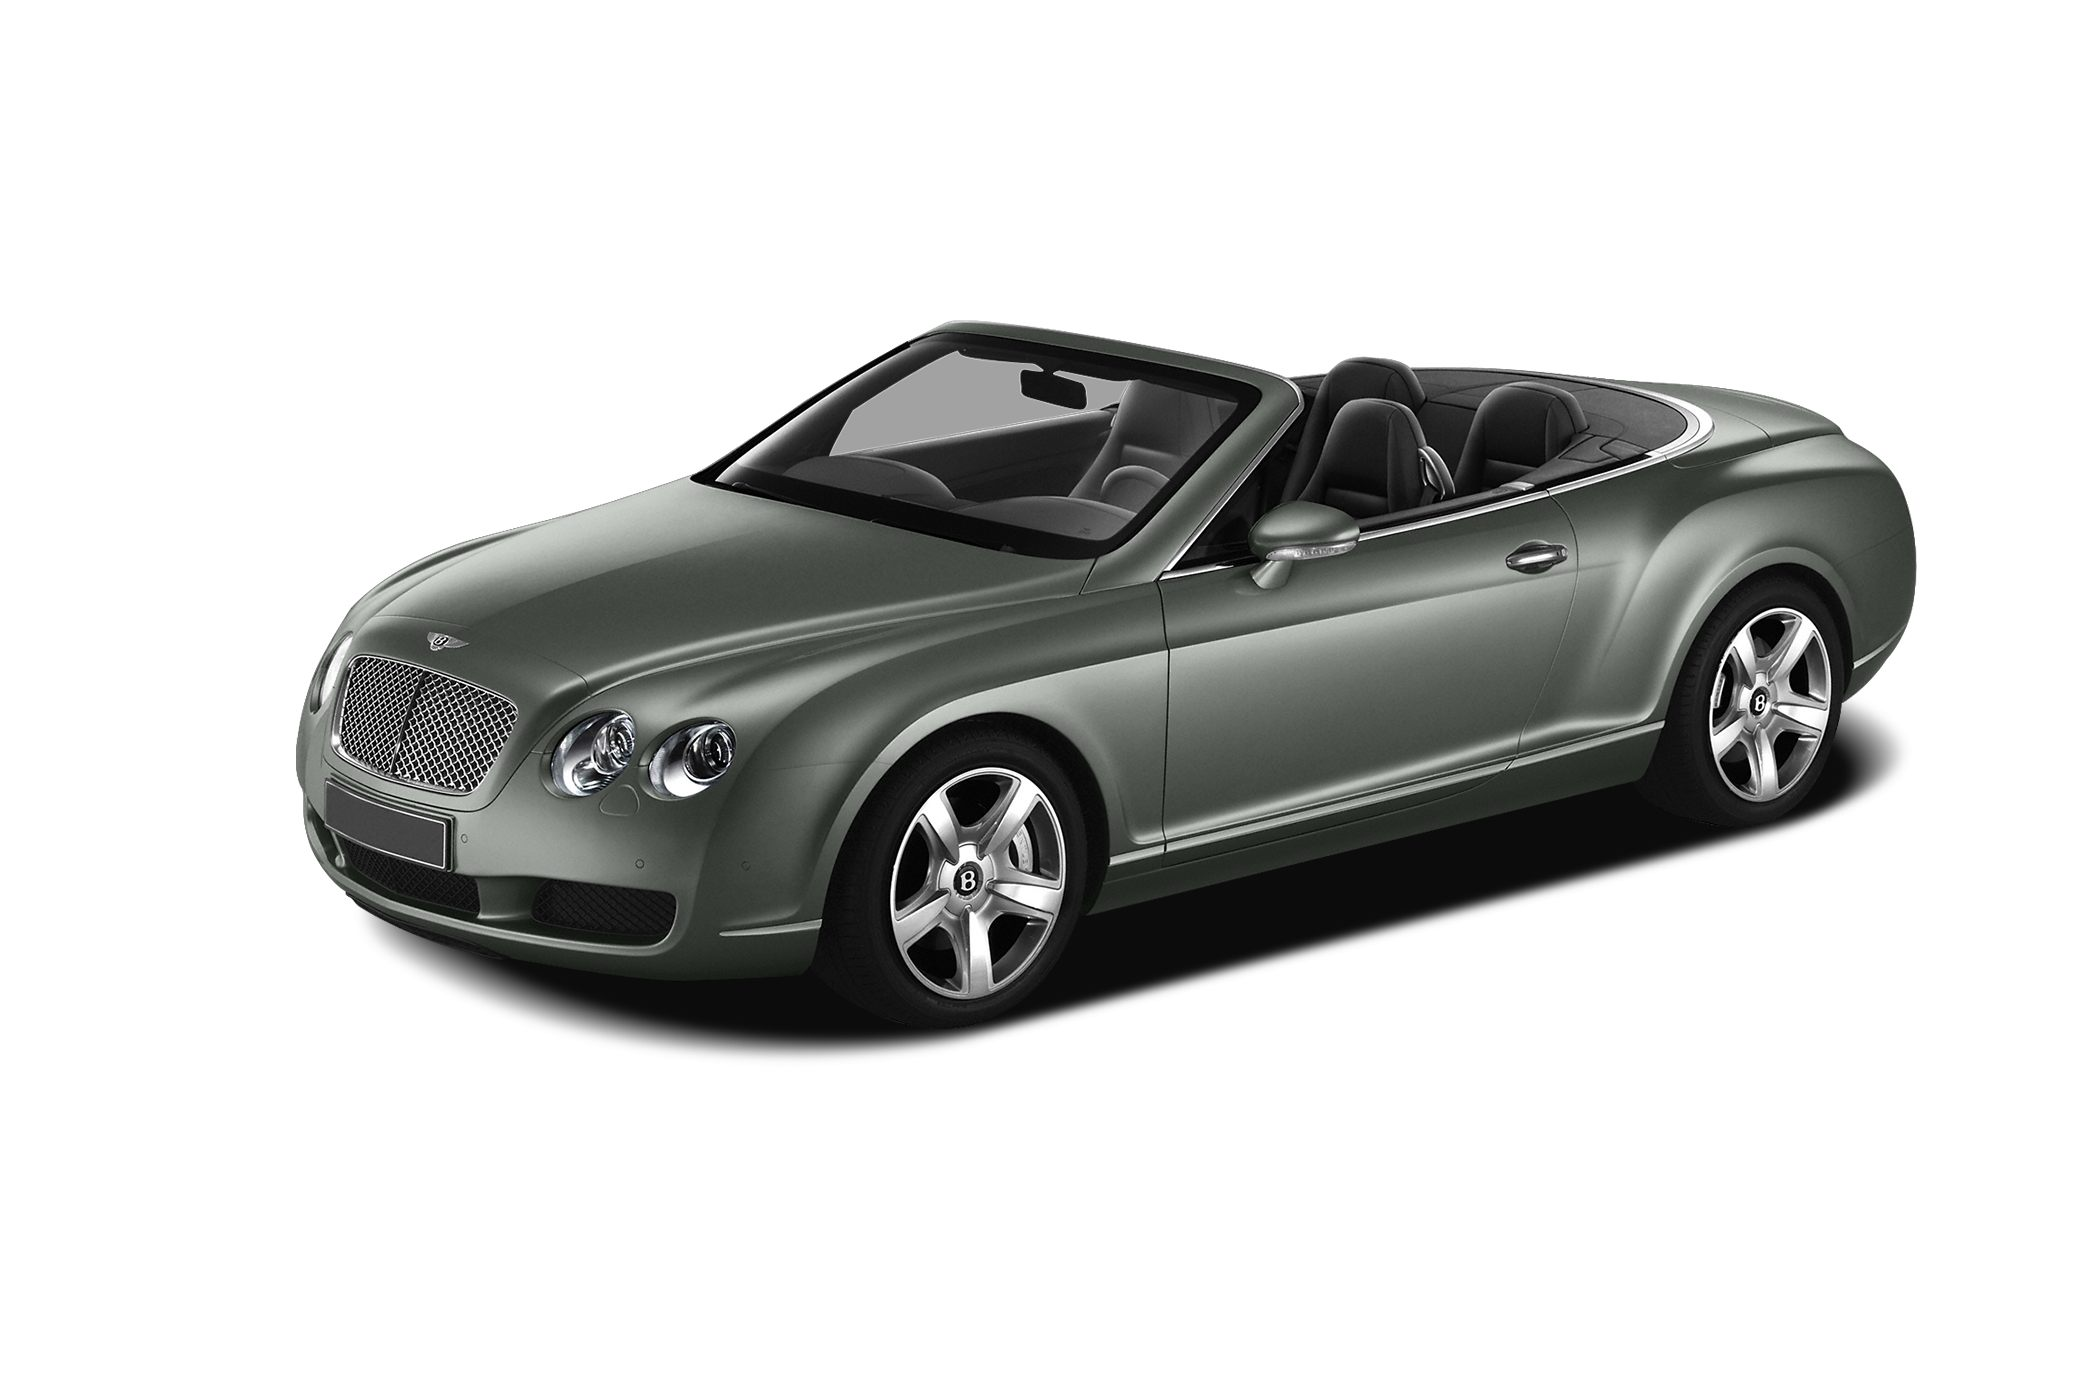 2008 Bentley Continental GTC Convertible for sale in Miami for $85,000 with 45,829 miles.